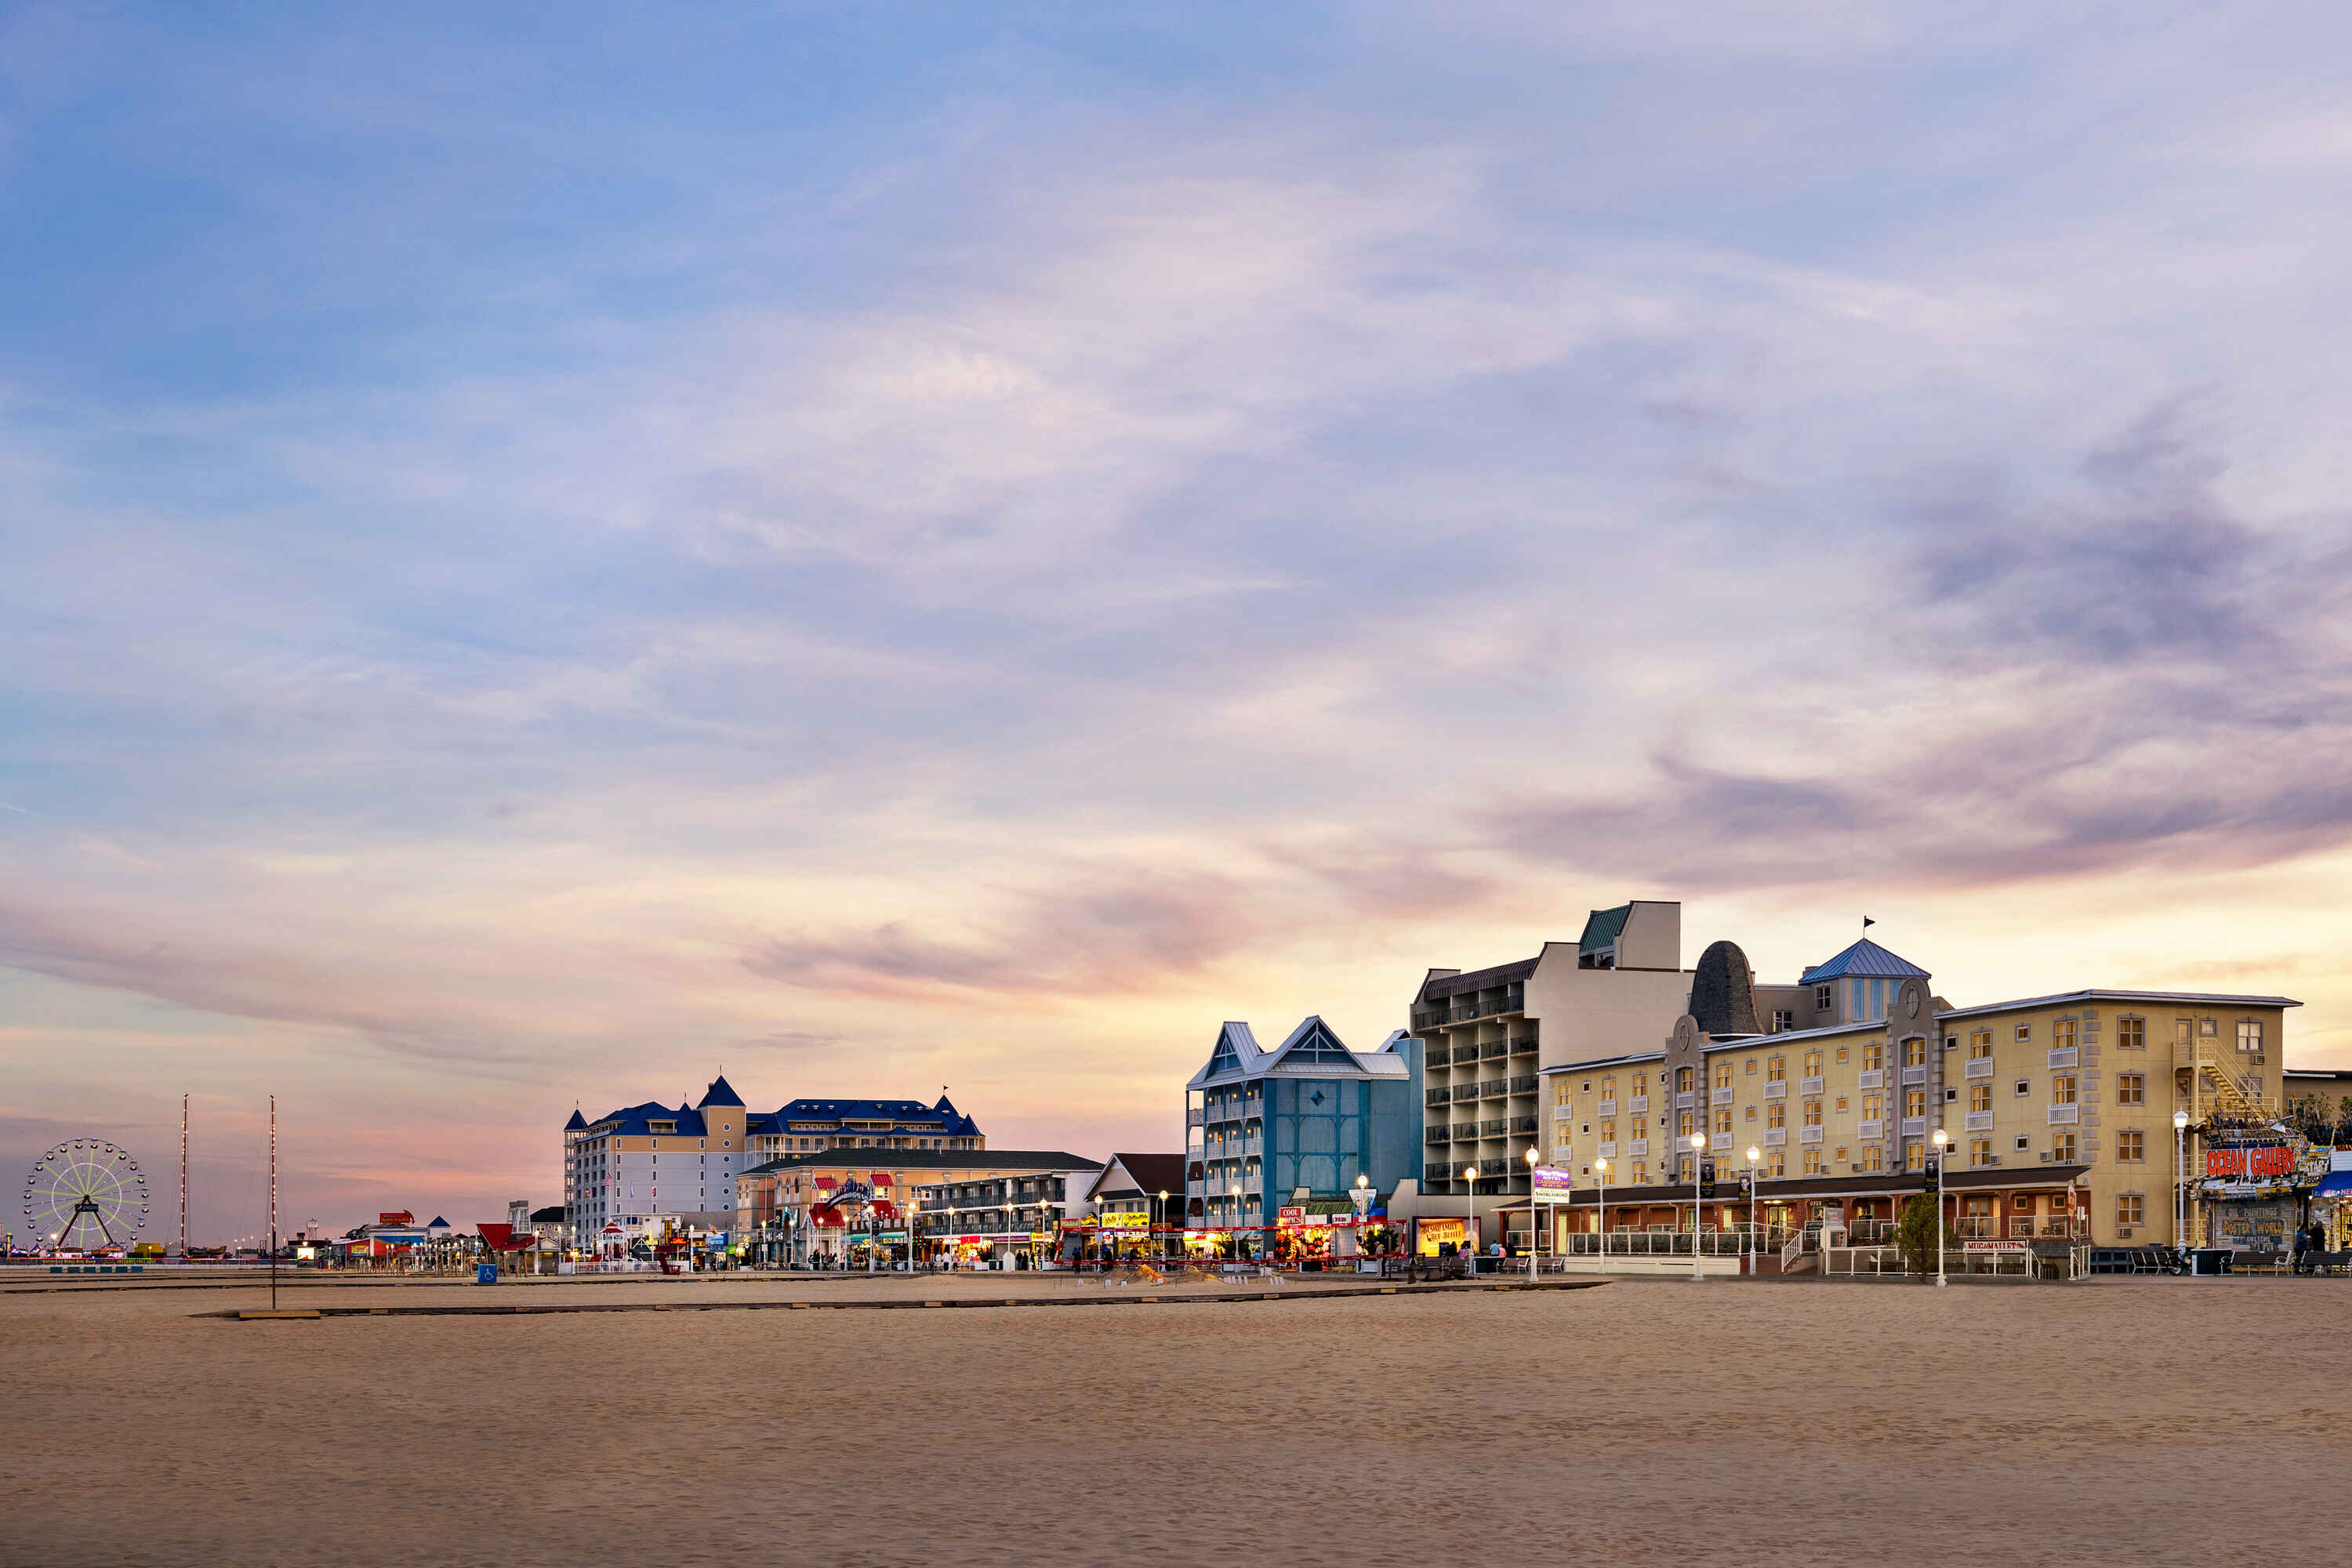 A variety of nearby Ocean City MD attractions await you, including restaurants and amusement rides, all within walking distance.